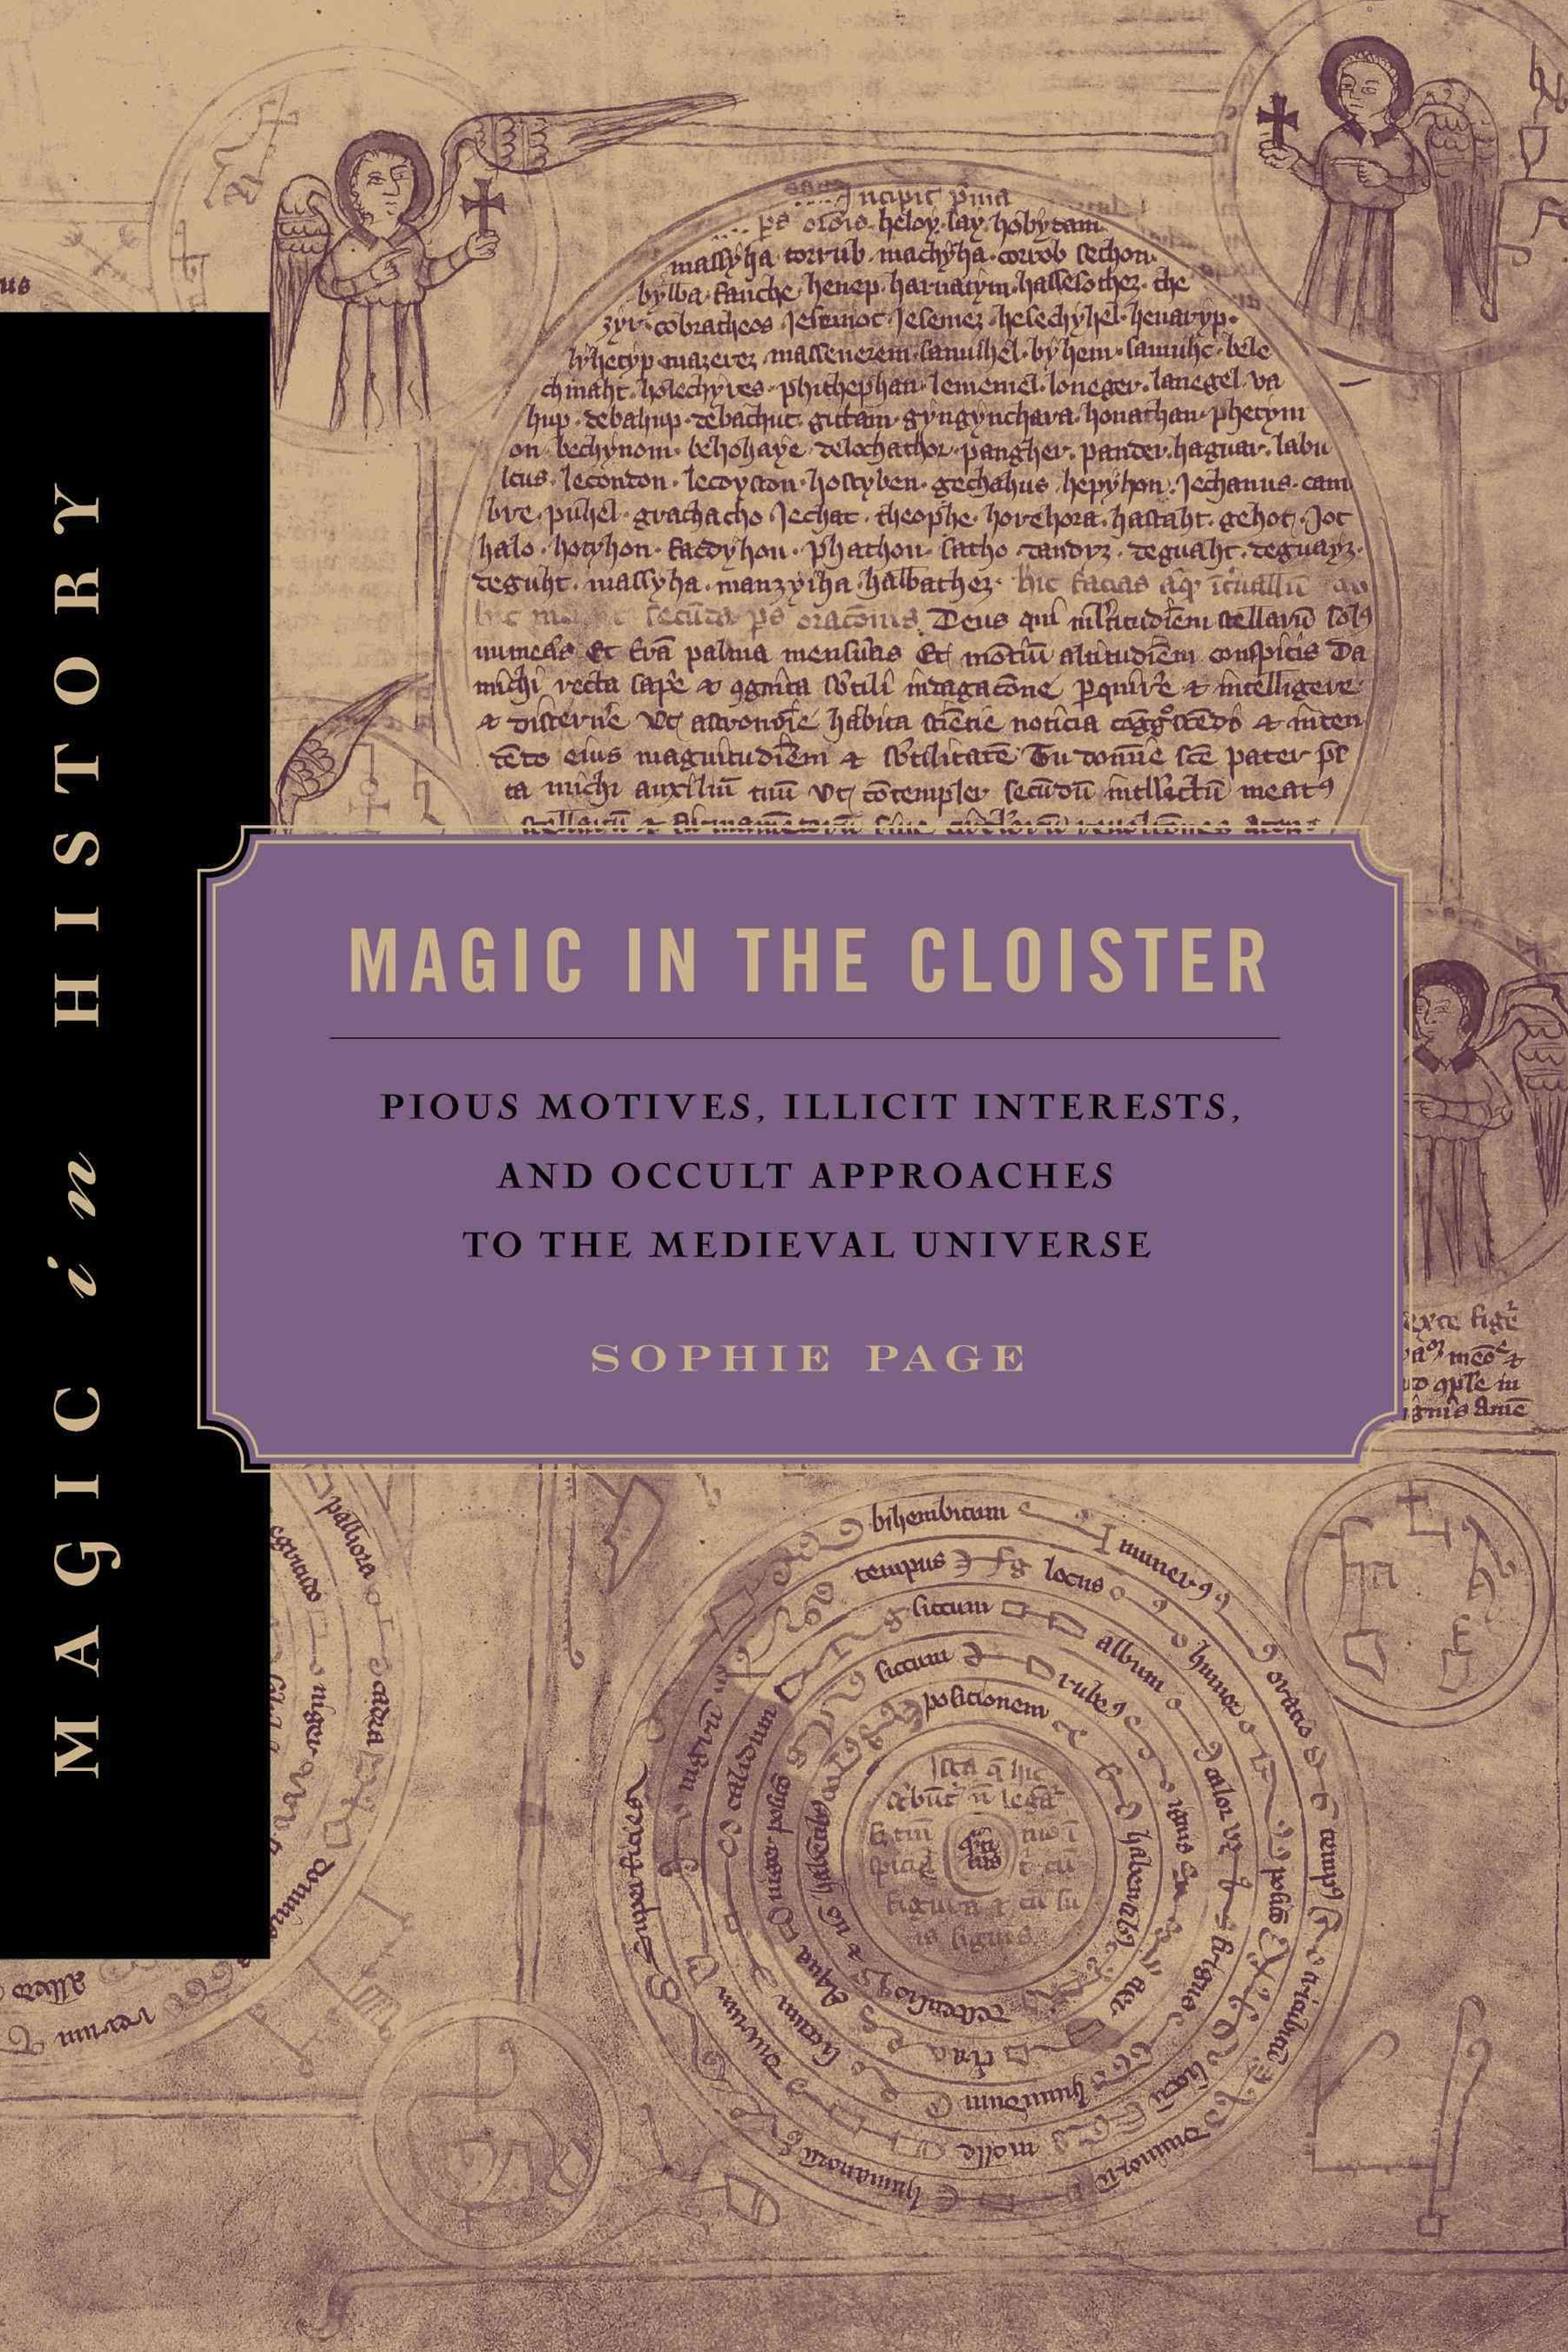 Magic in the Cloister